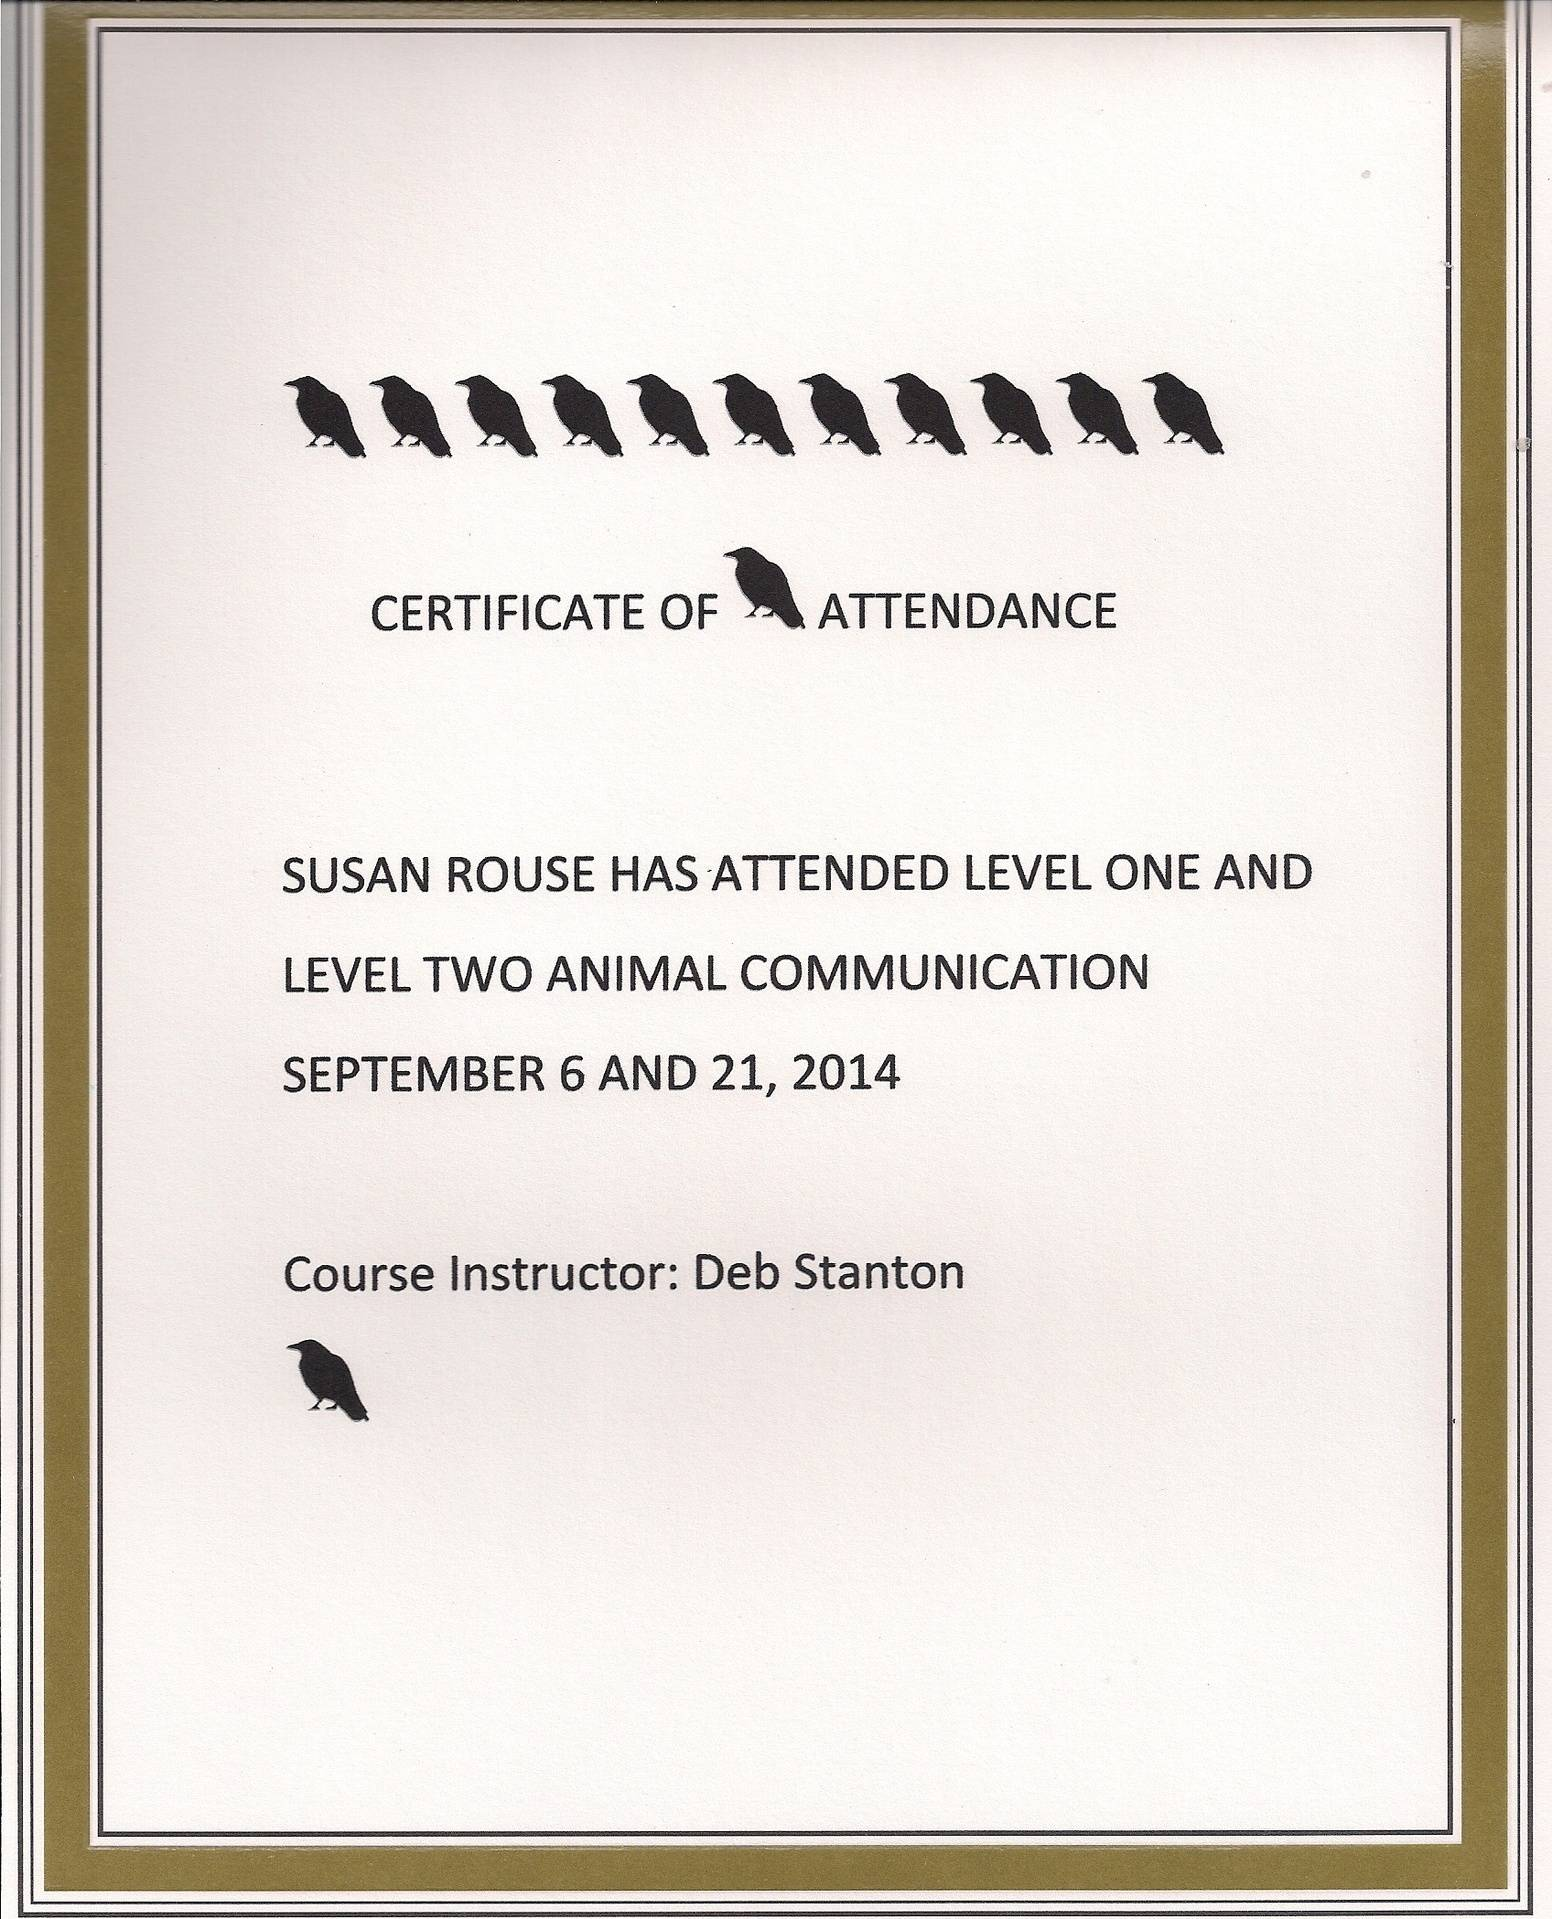 Animal Communication Level 1 and 2 Certificate